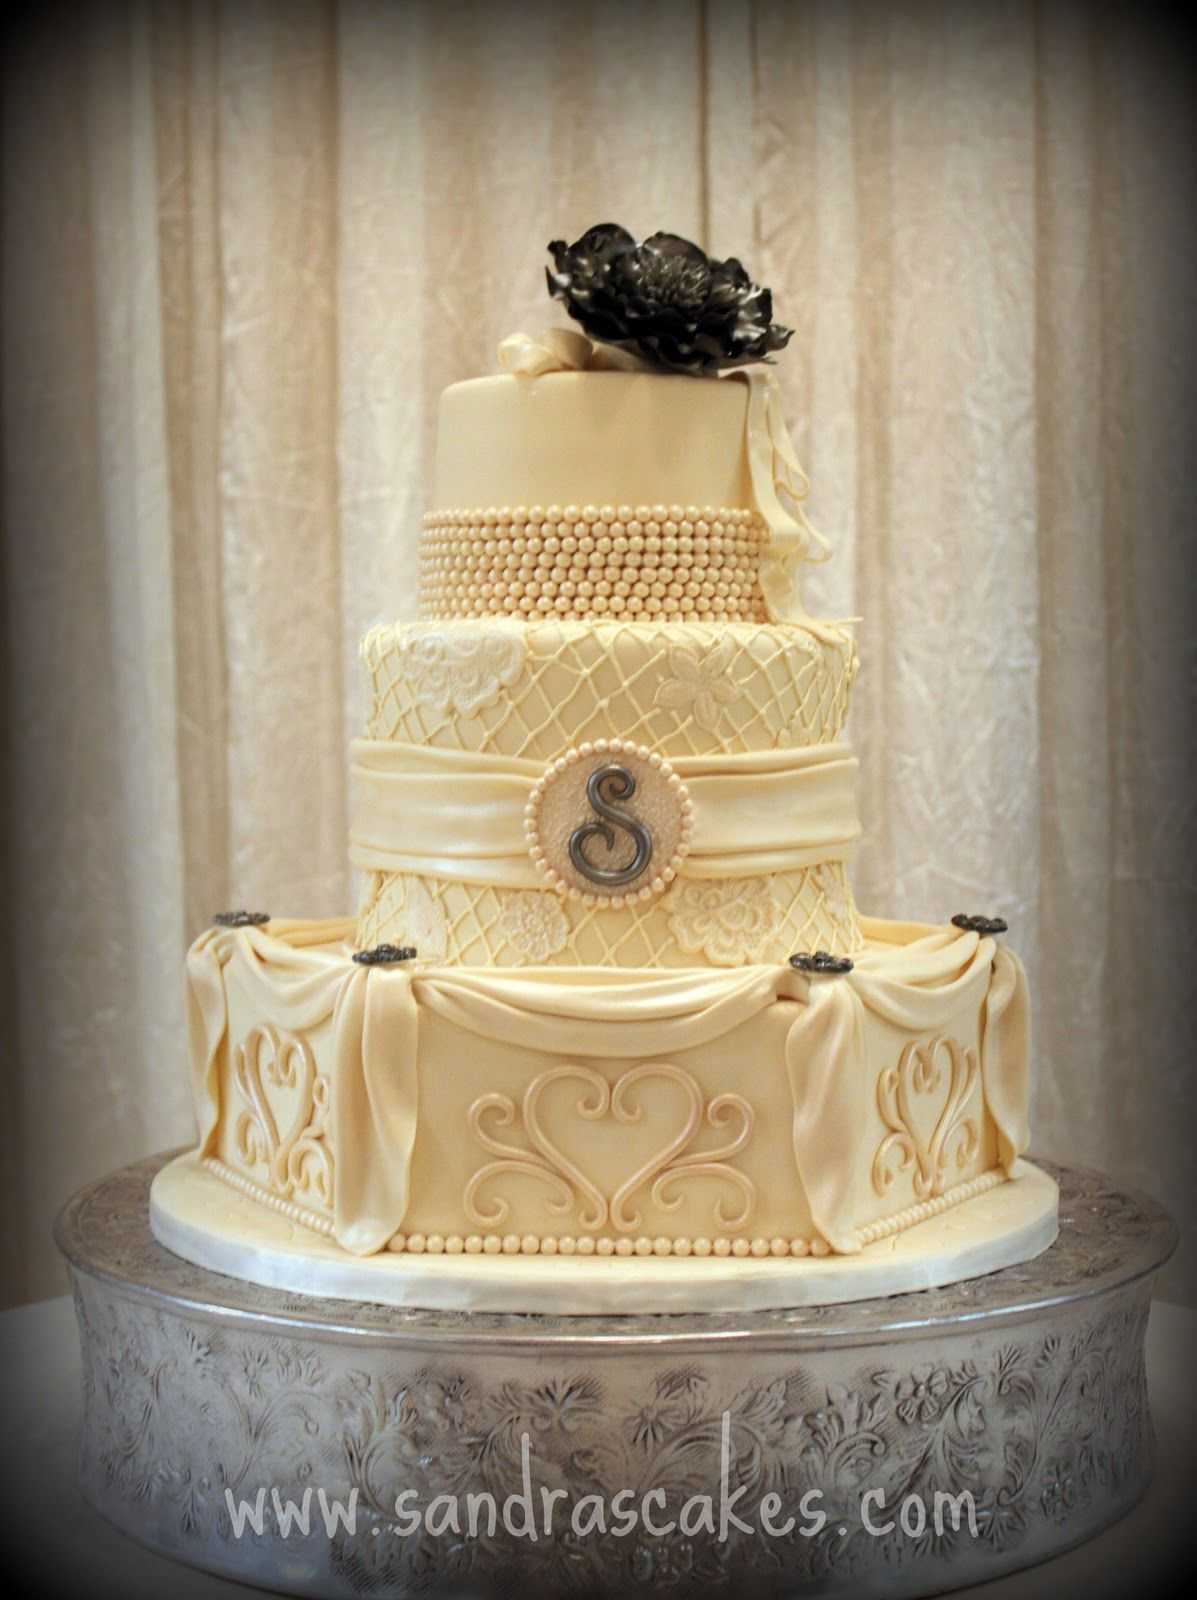 Vintage Wedding Cakes | Stunning Vintage Wedding Cake | Cakes ...